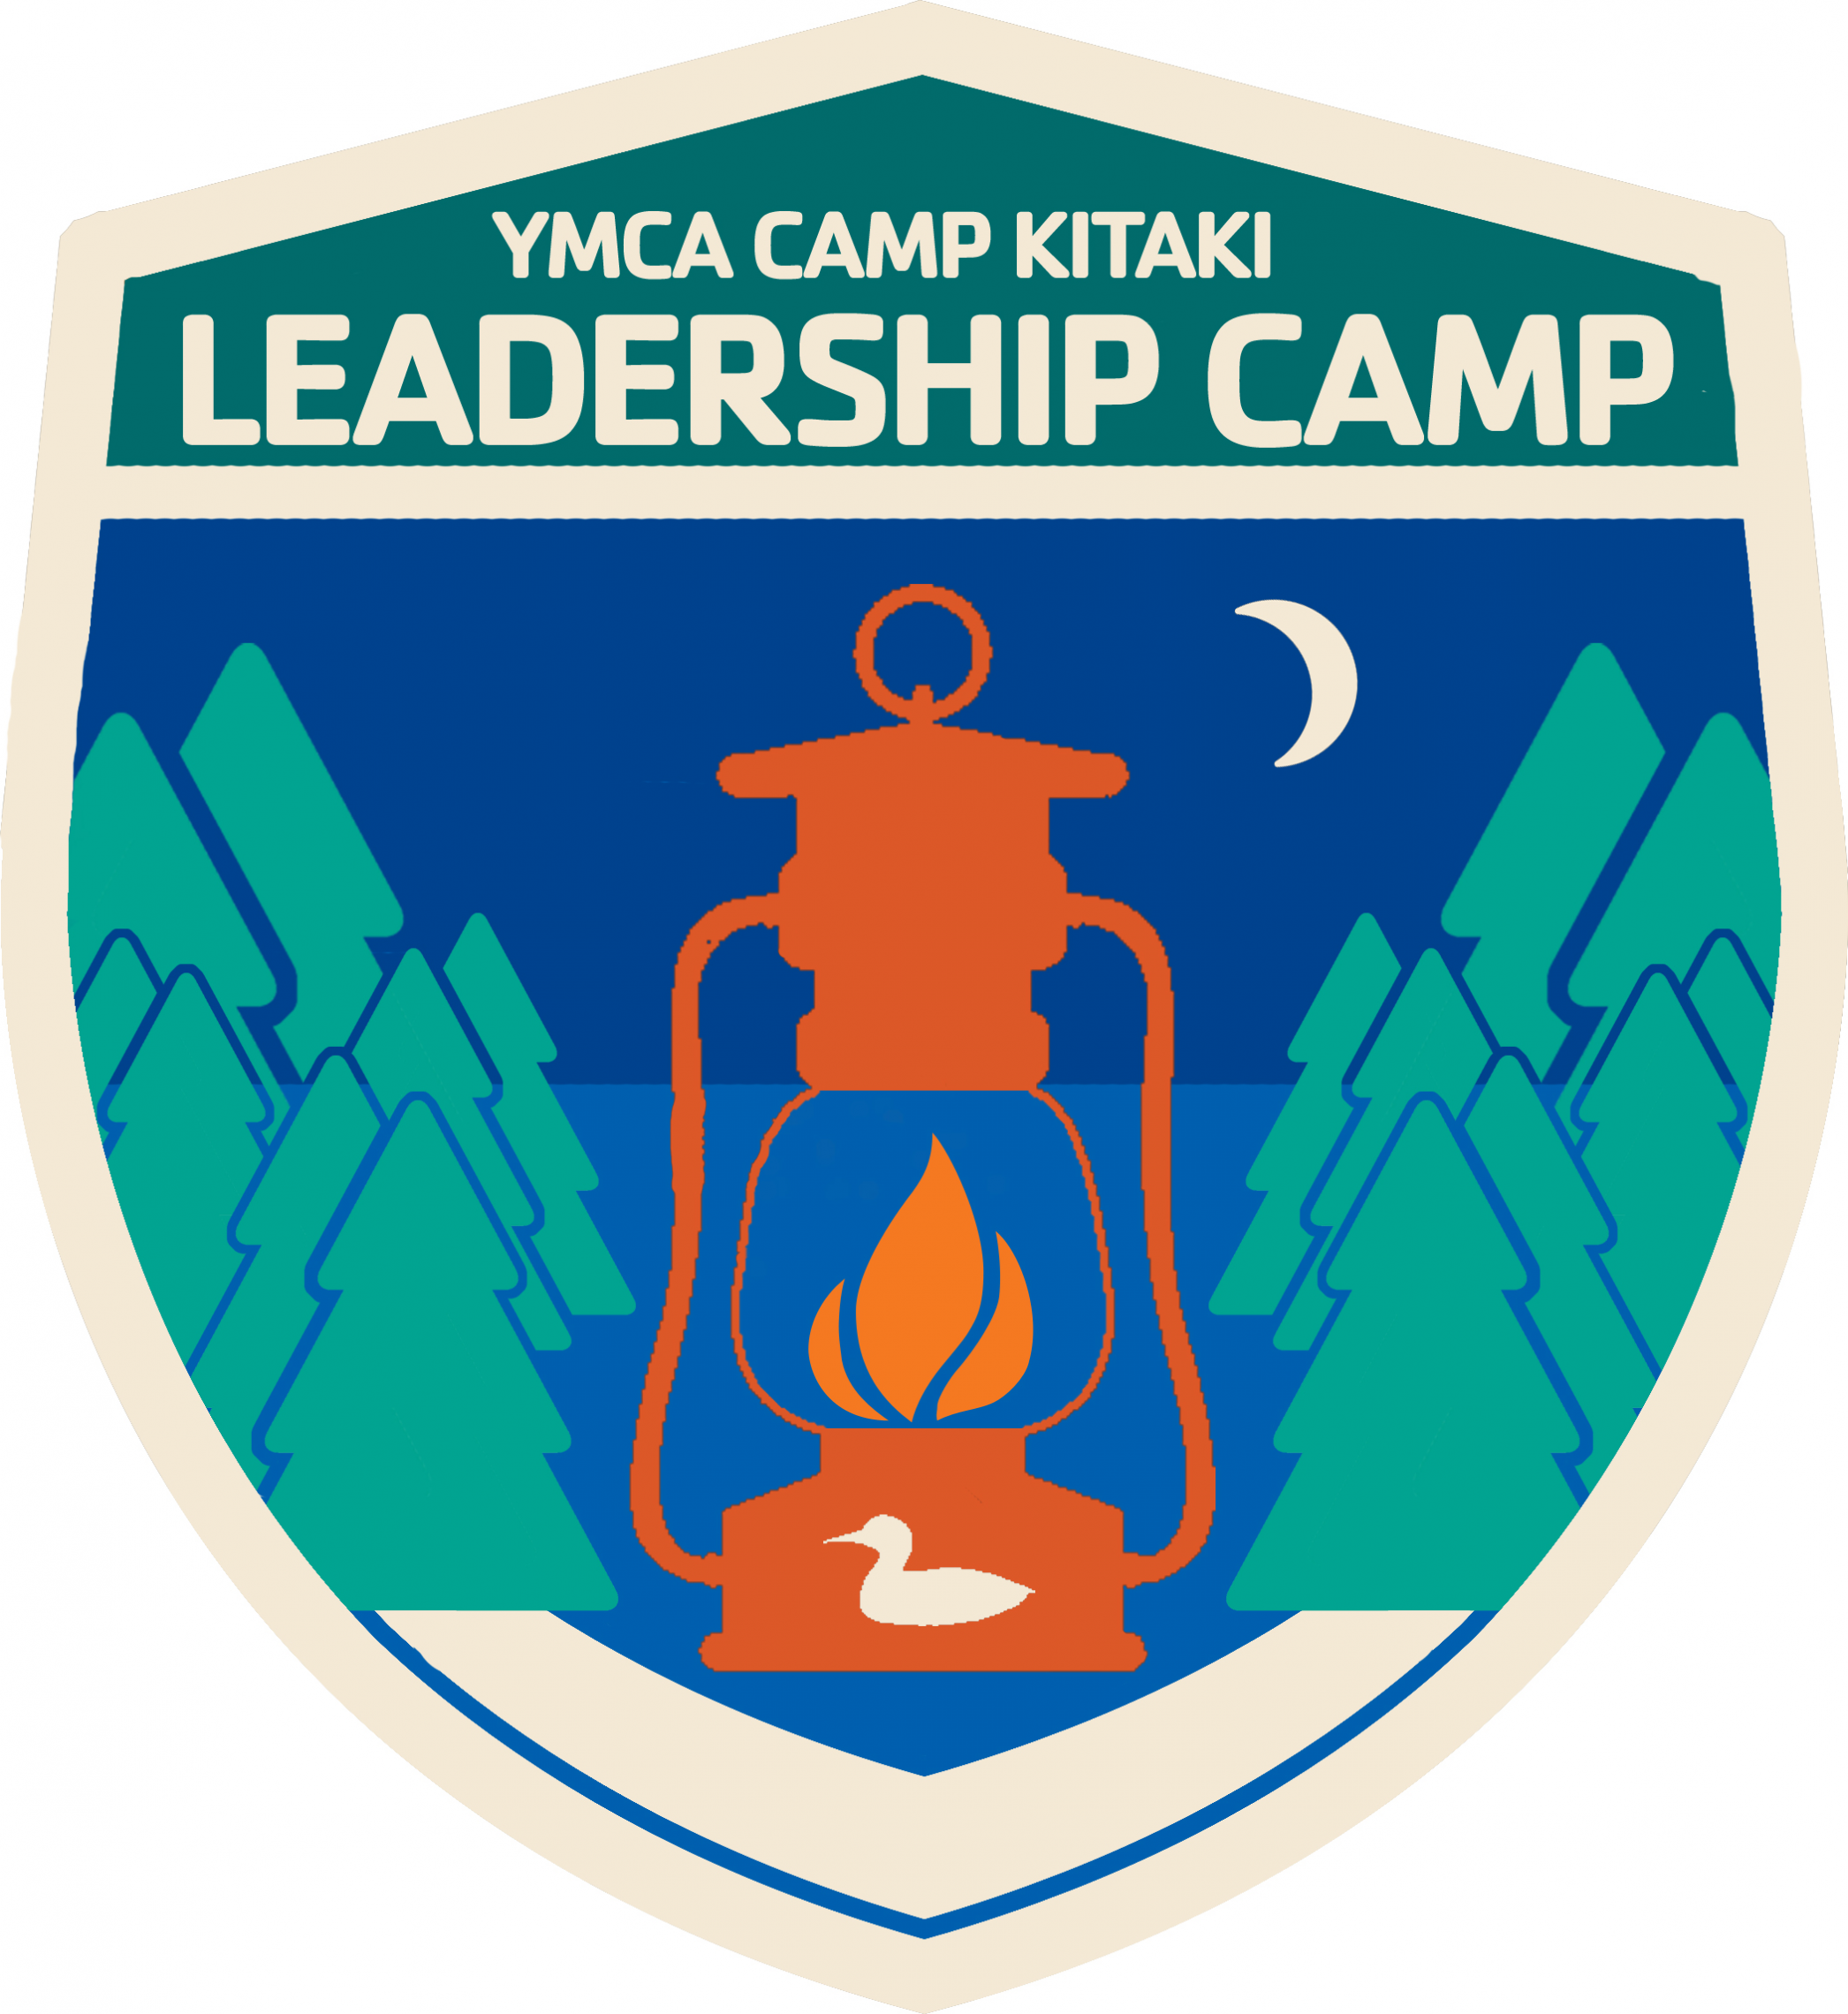 A program badge for Leadership camp